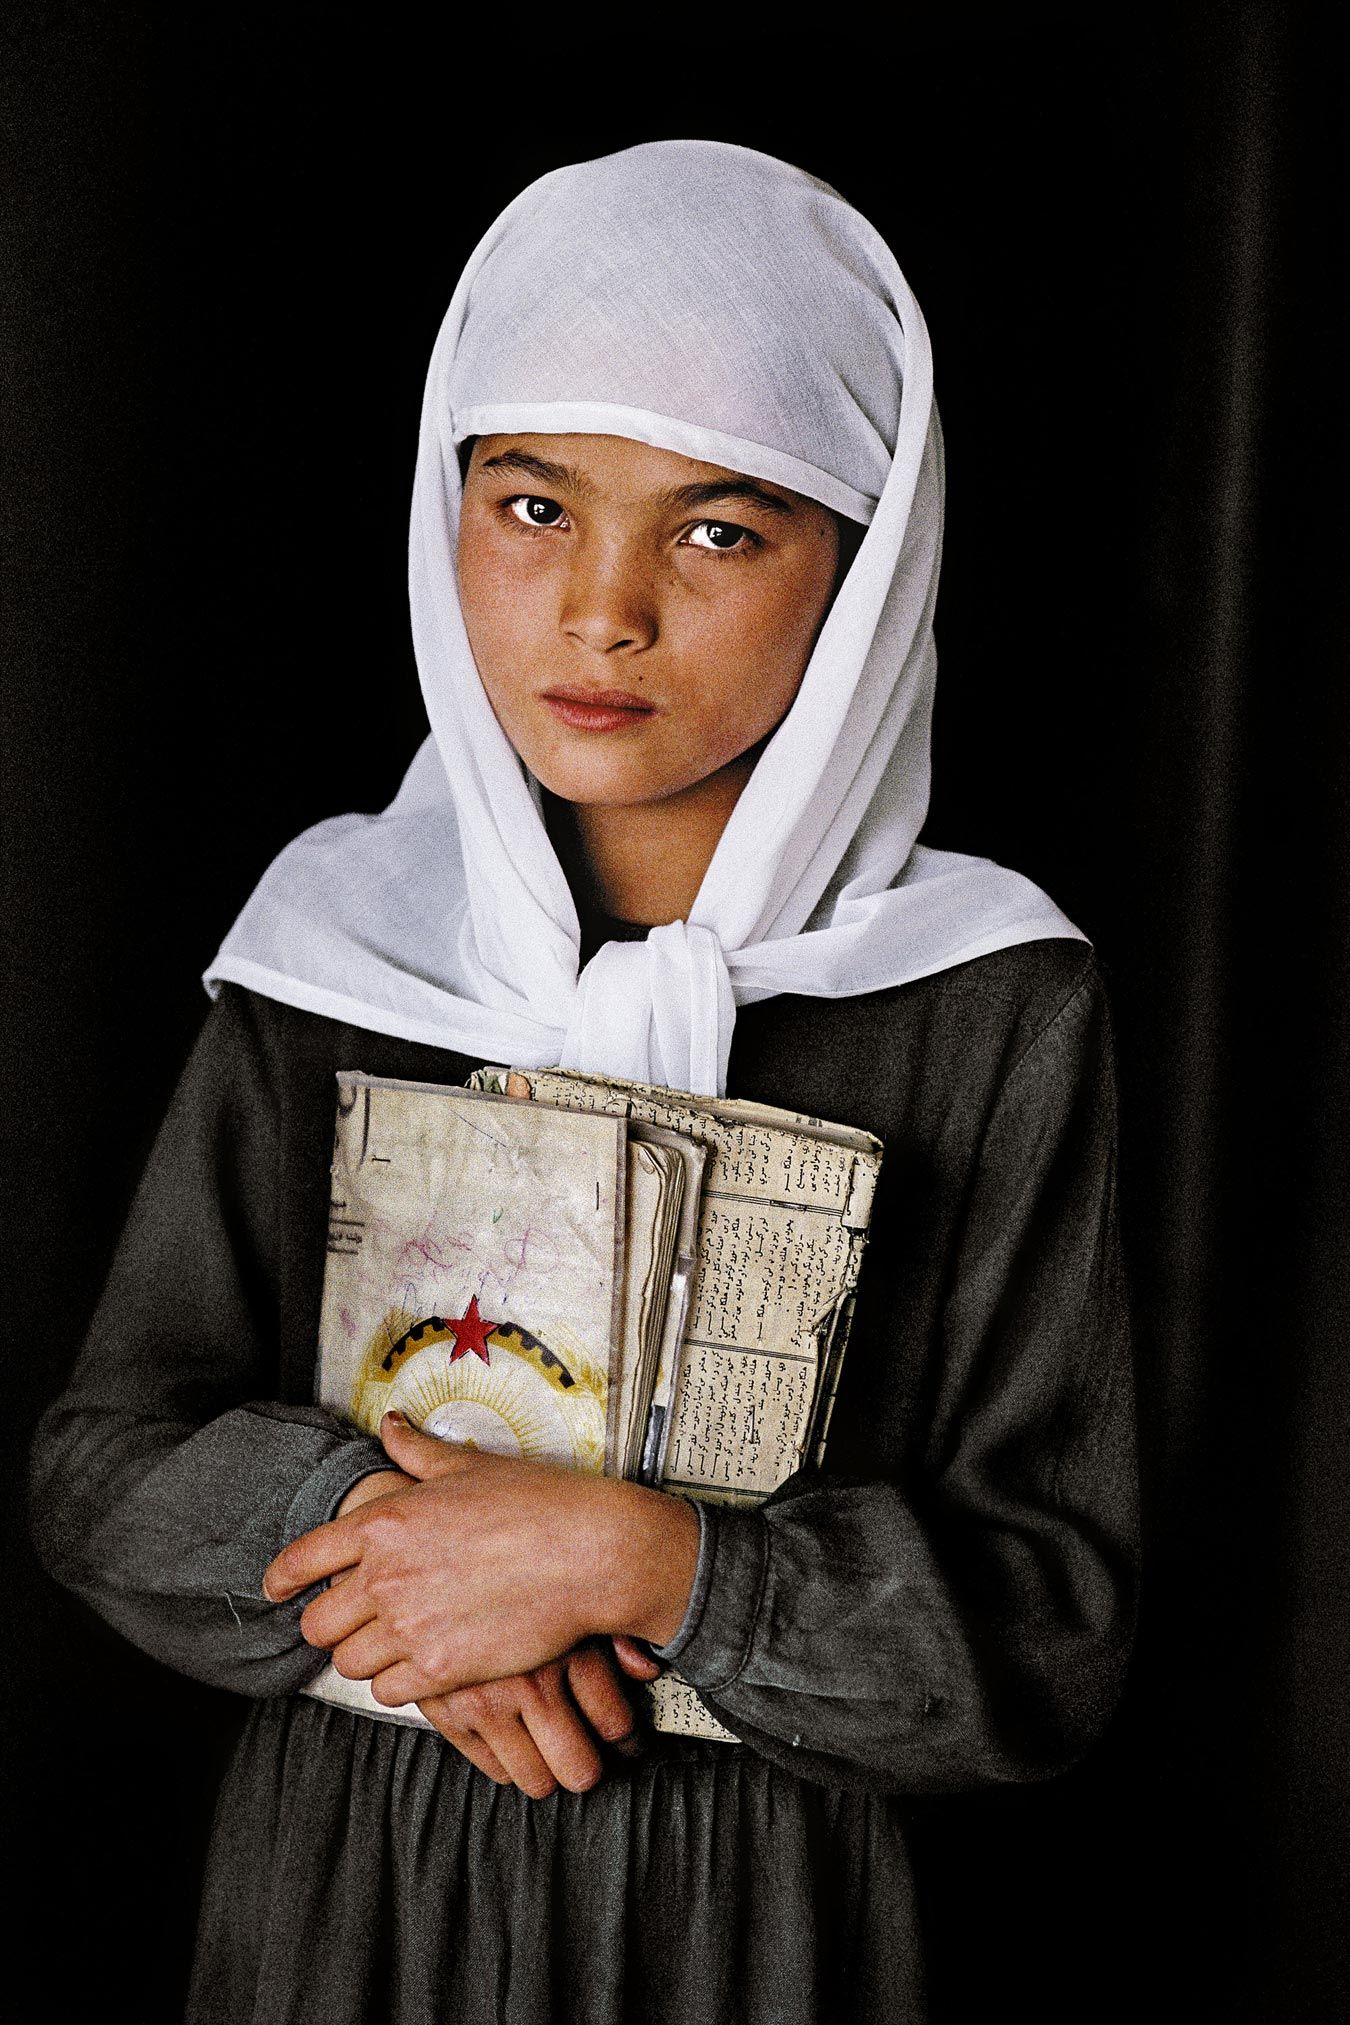 School Girl, Herat | AFGHN-10065 / / Photography by Steve McCurry / Here you can download Steve's FREE PDF Catalog and order PRINTS / http://stevemccurry.com/sites/default/files/Fine%20Art%20Print%20Catalog%20Spring-Summer%202012.pdf